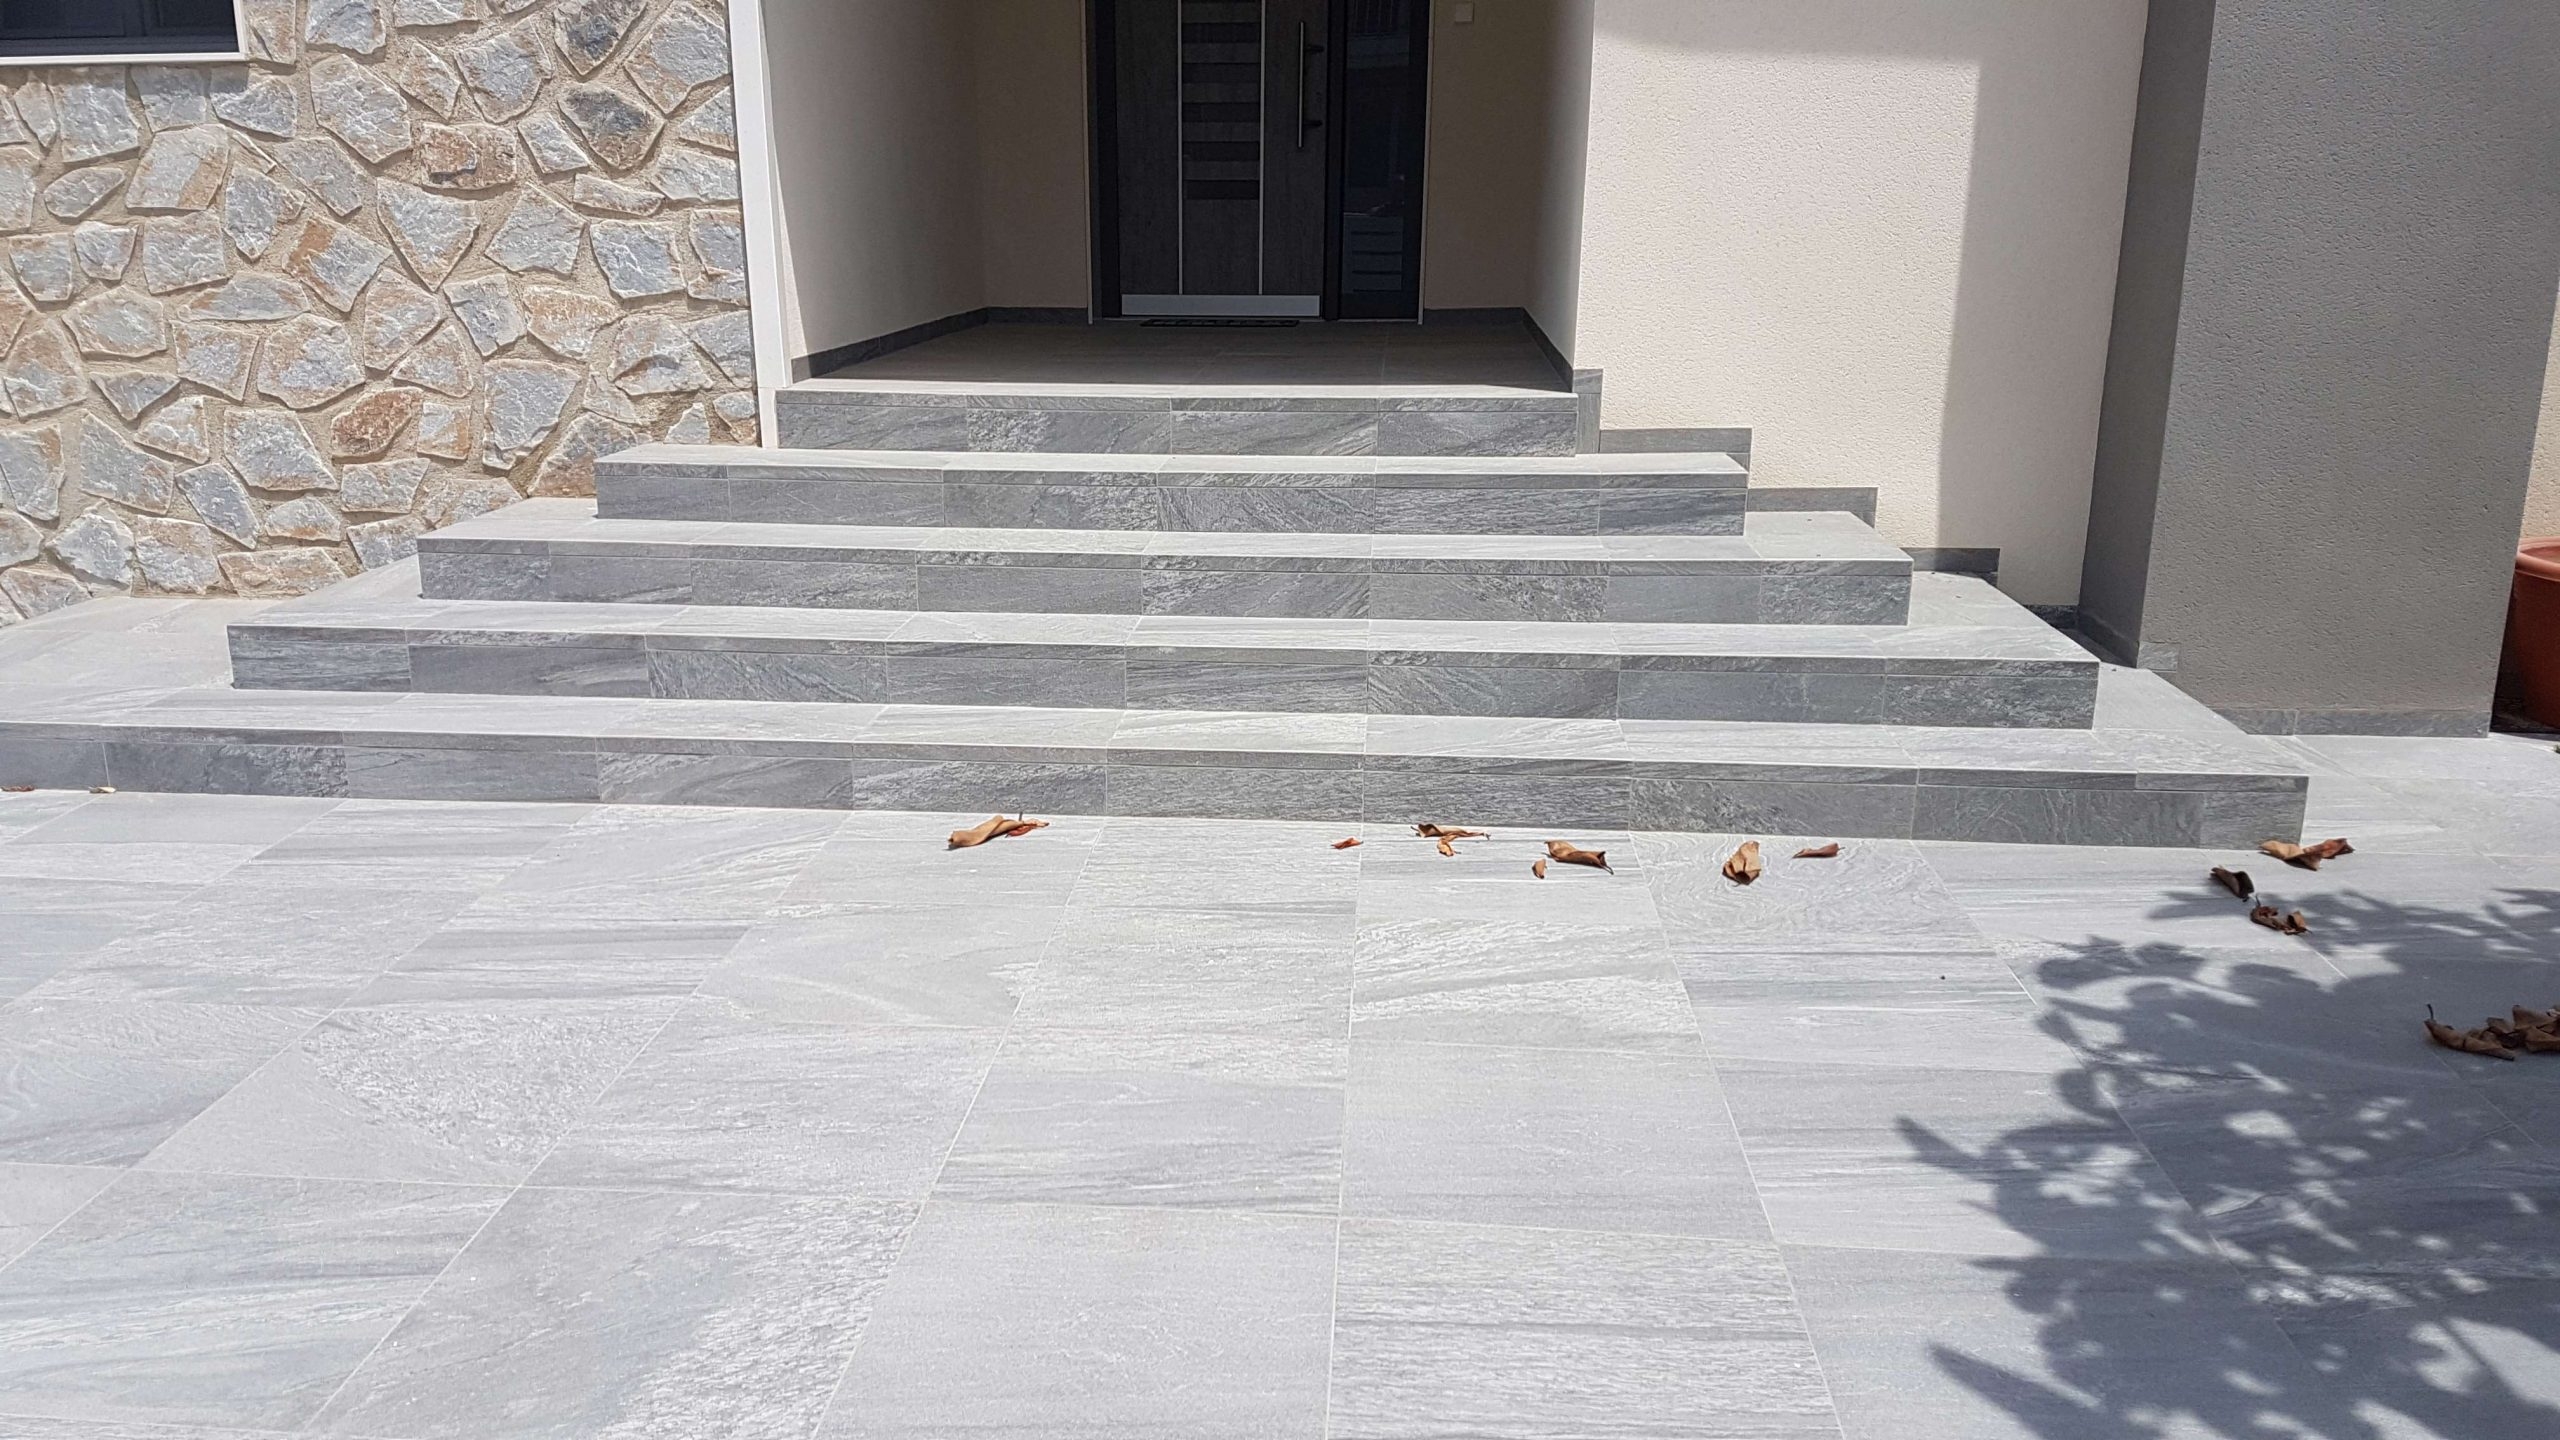 block-paving-tiles-garden-steps-with-cobbe-paving-wall